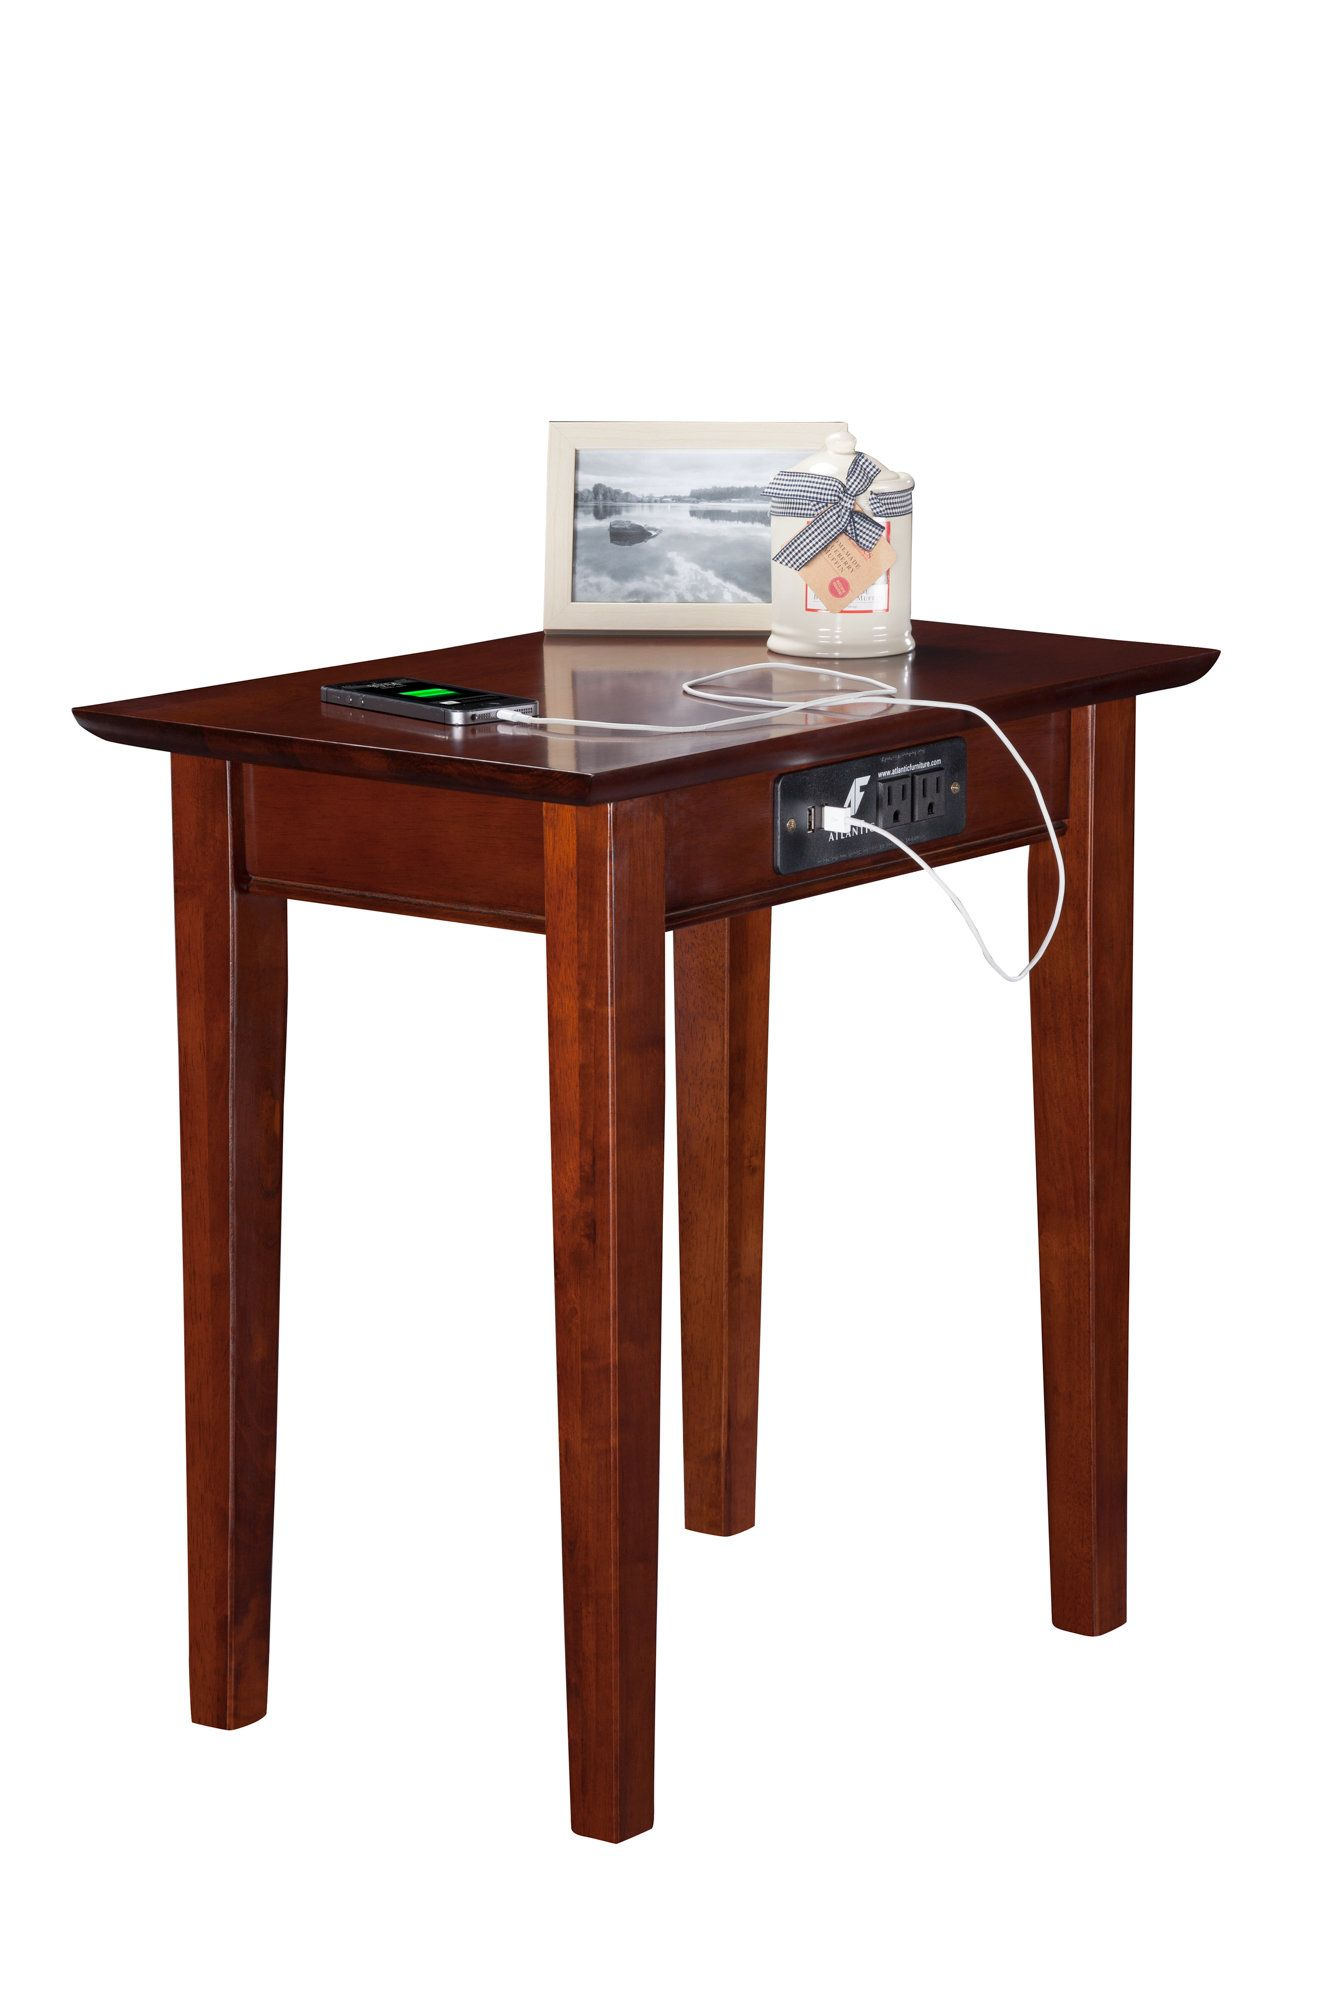 ithaca end table products accent tables with charging station farmhouse coffee set oak plans glass stacking wooden side designs vintage french bedside gold mirror decorative